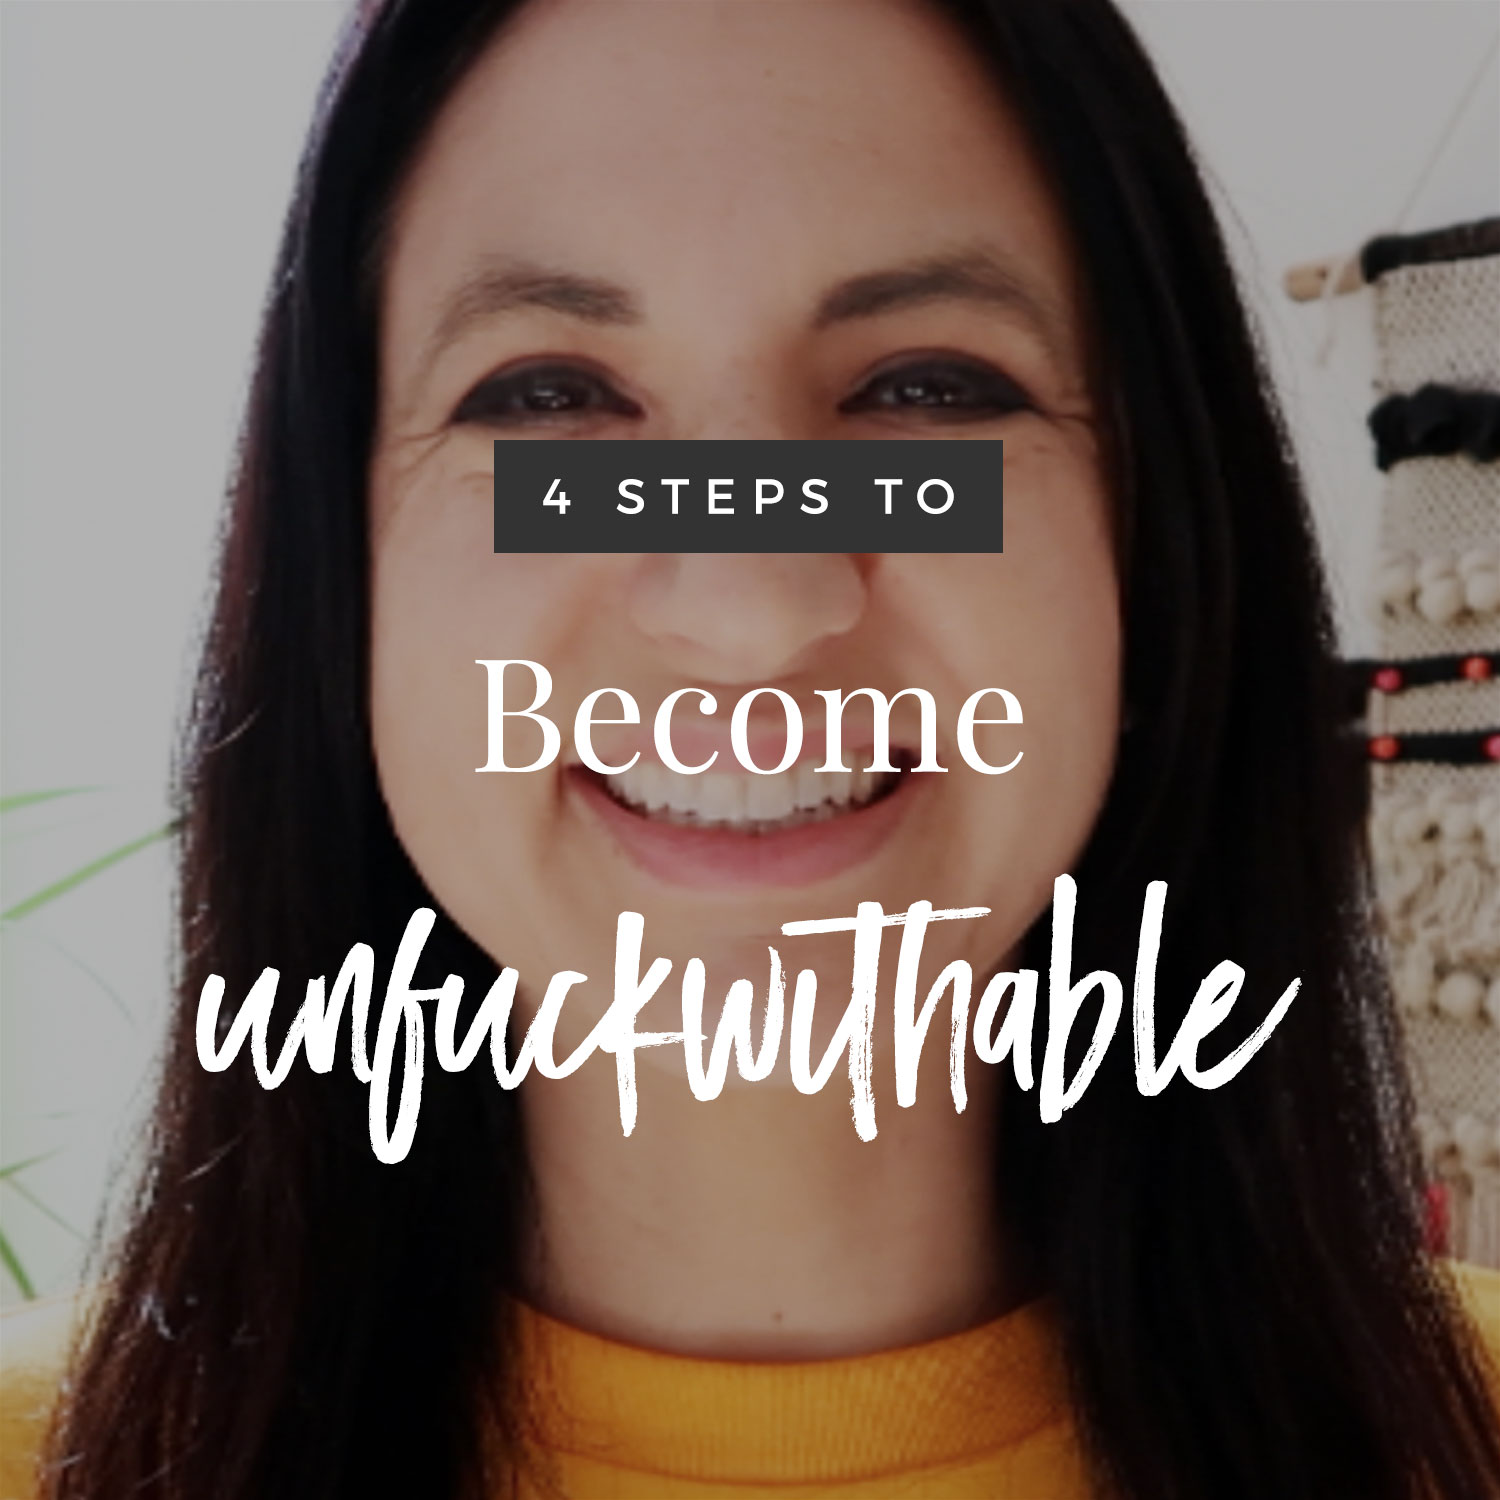 4 Steps To Become Unf*ckwithable